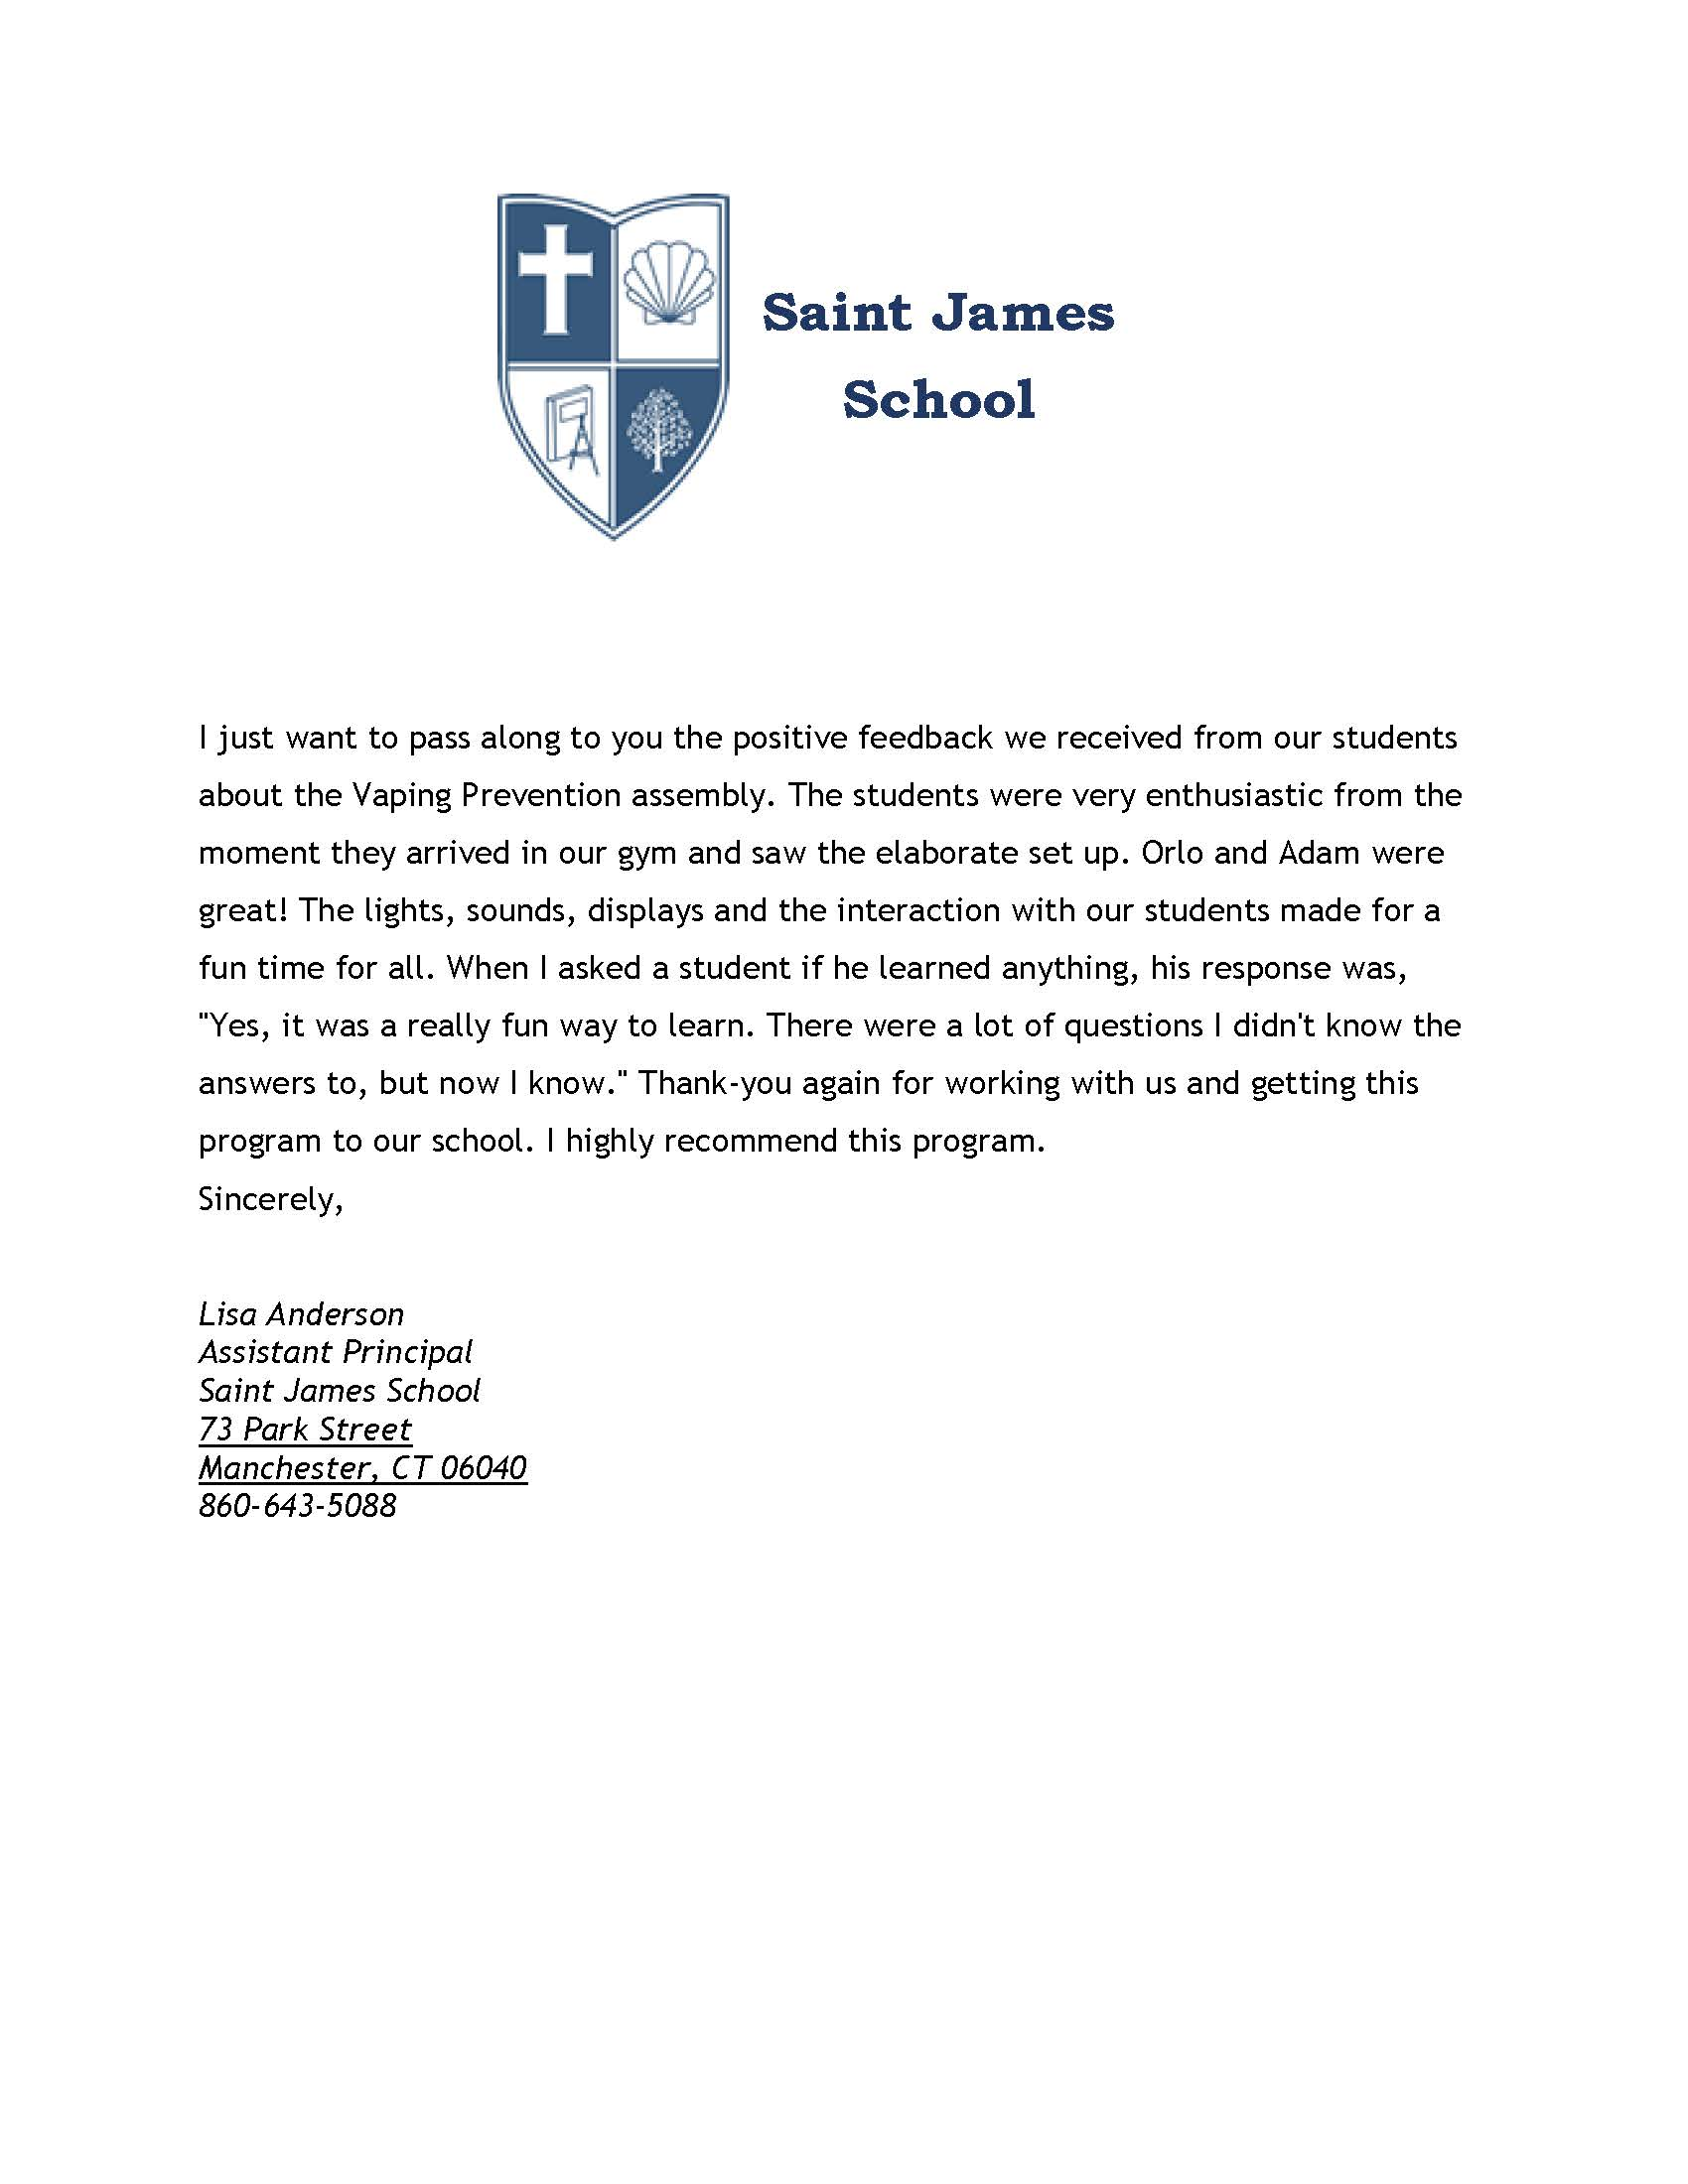 RCGS -Vaping Prevention - Saint James School - 1-8-20